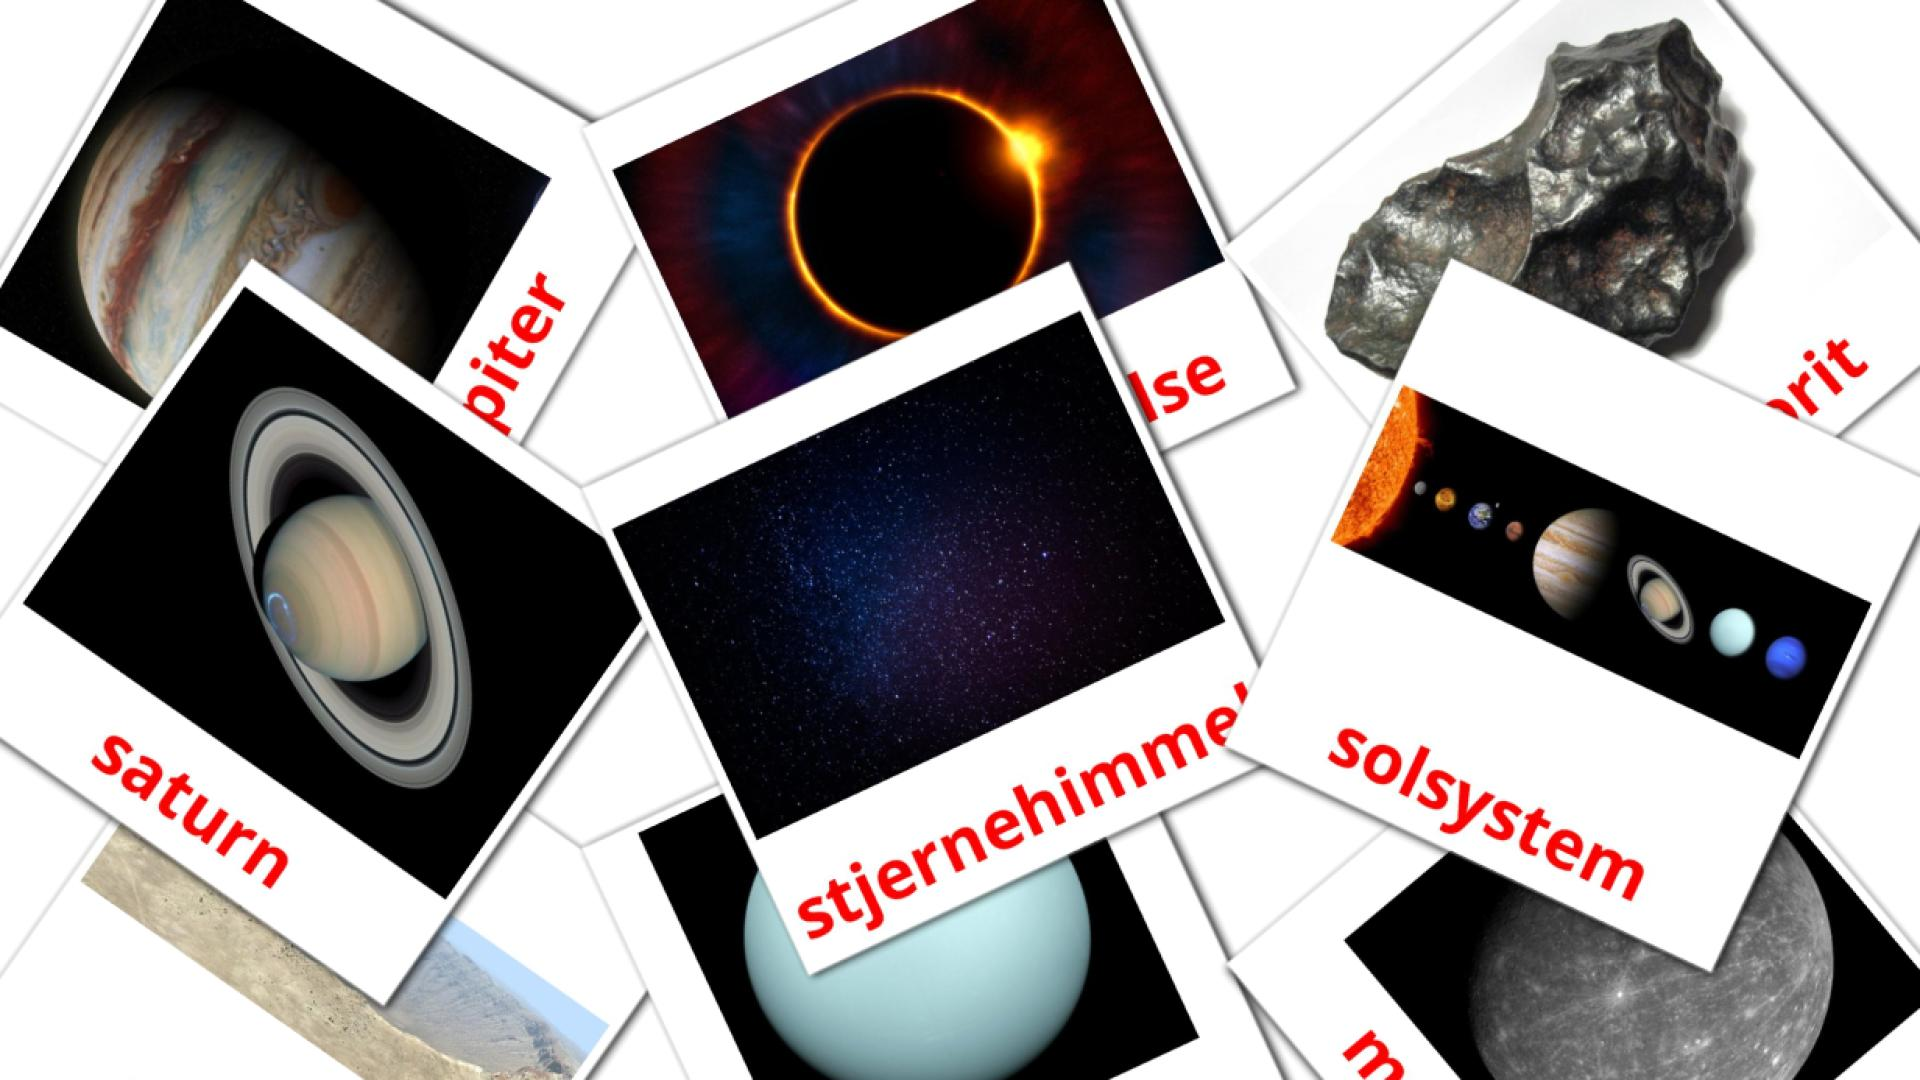 Solar System flashcards